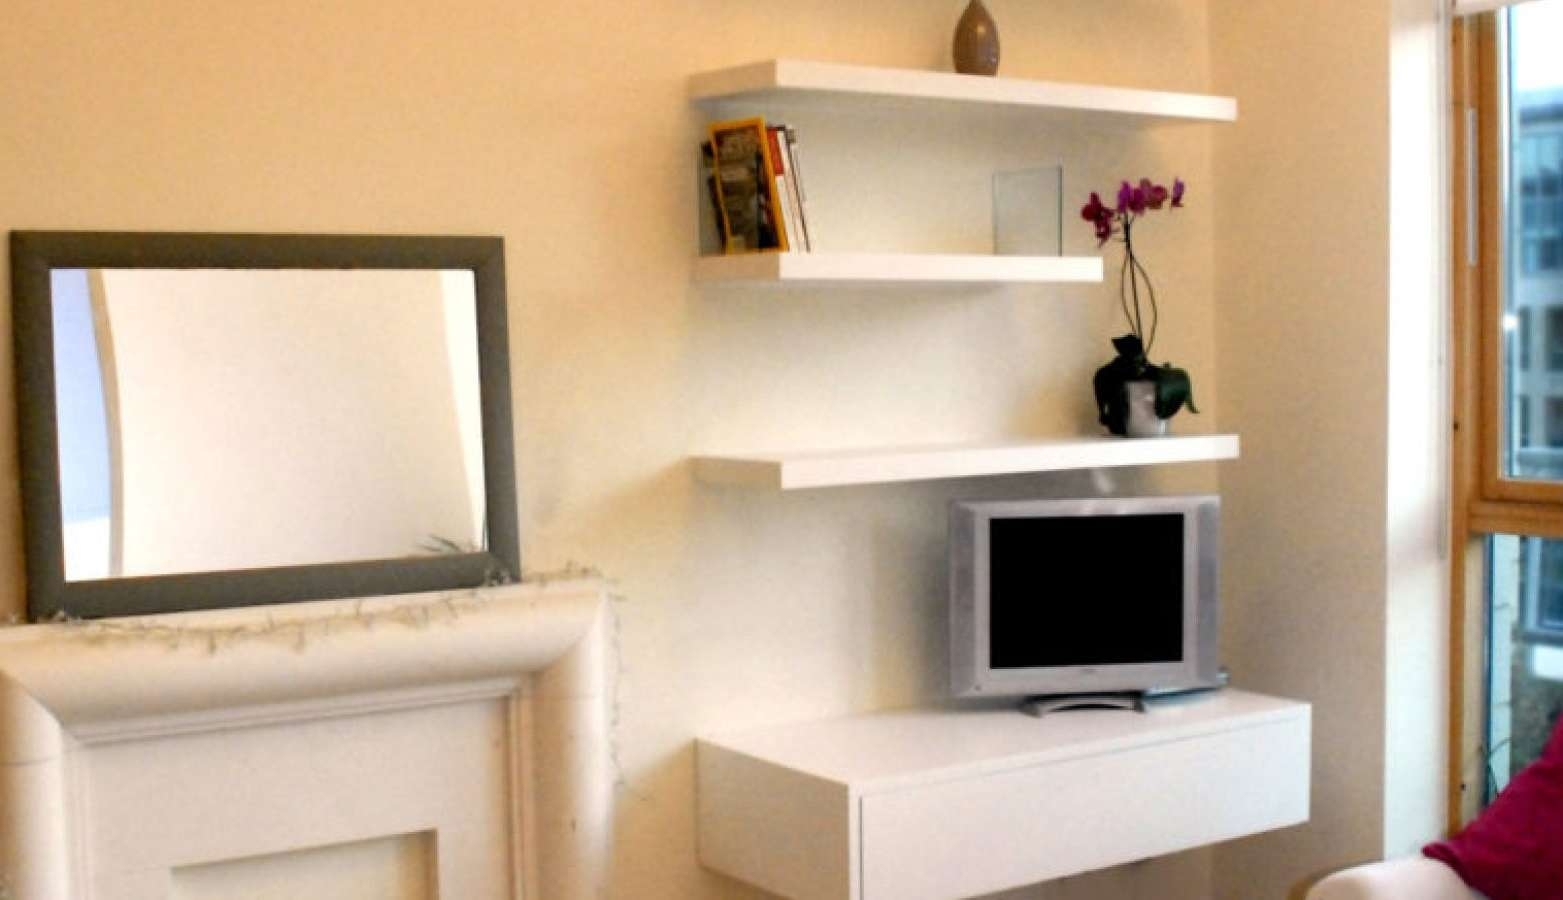 Shelving : 90 Single Shelf Tv Stand Awesome Awesome Single Shelf Pertaining To Single Shelf Tv Stands (View 12 of 15)